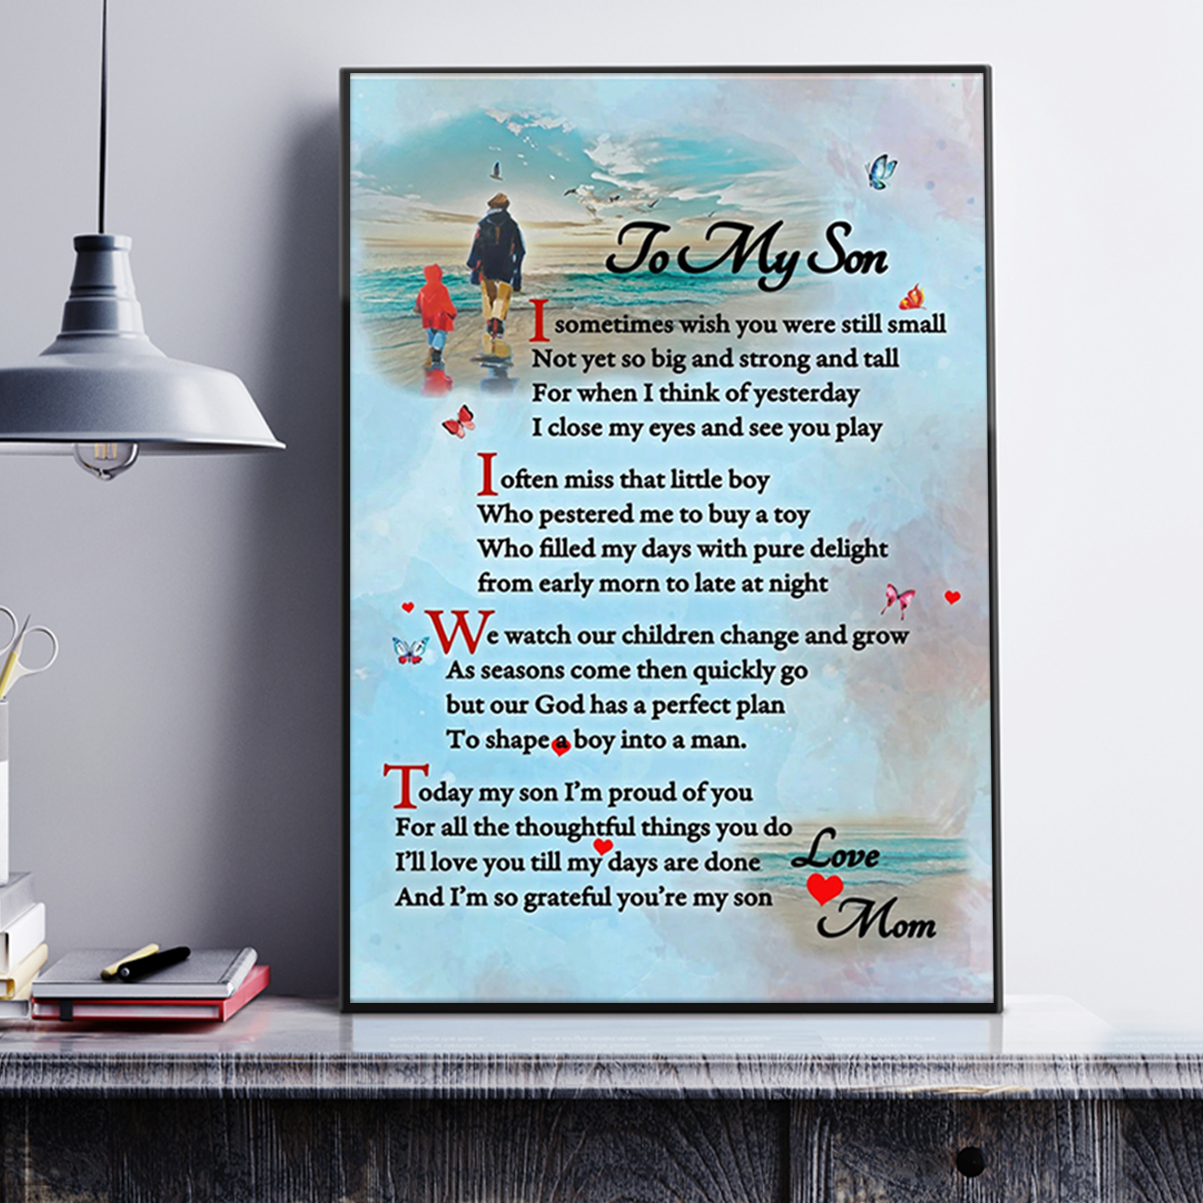 To my son mom canvas prints and poster A3